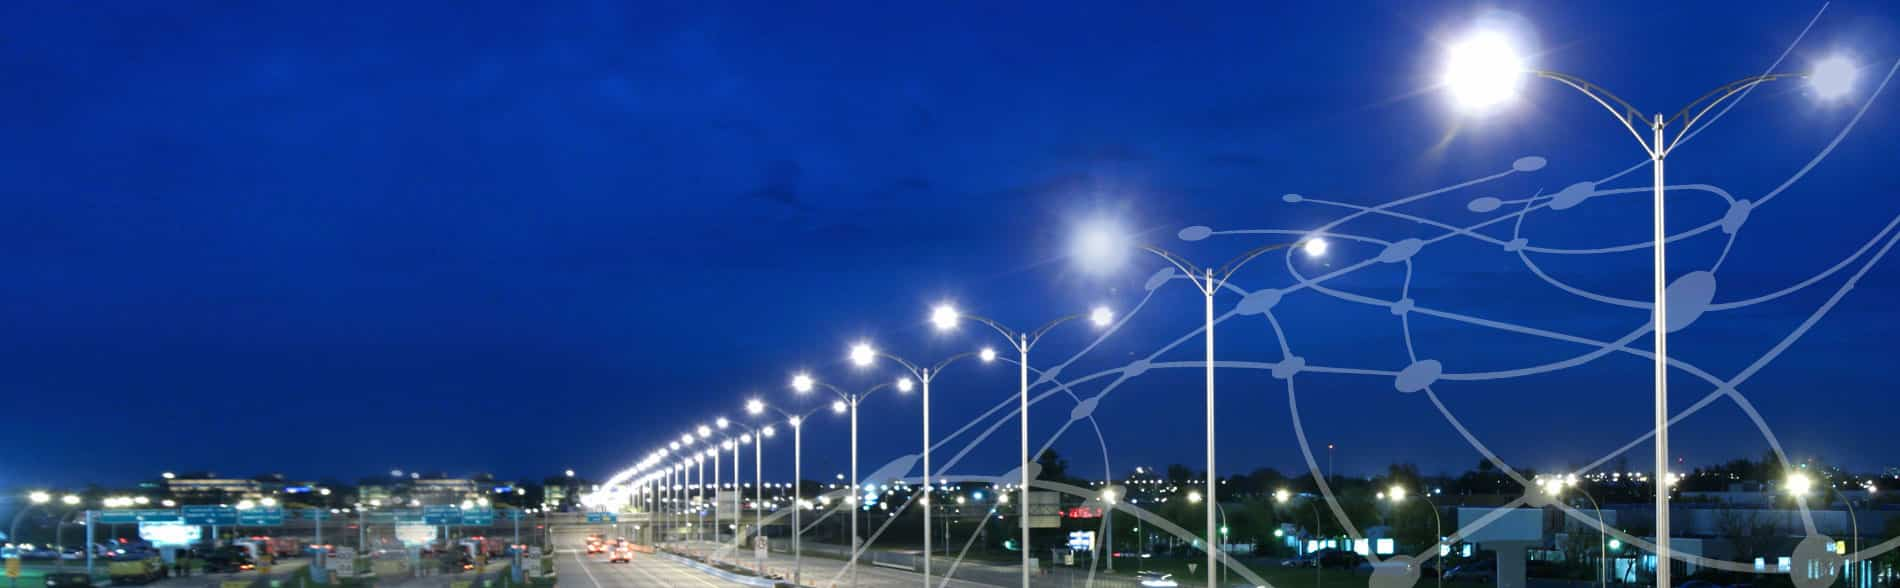 VEmesh smart street lighting control - wireless and IoT